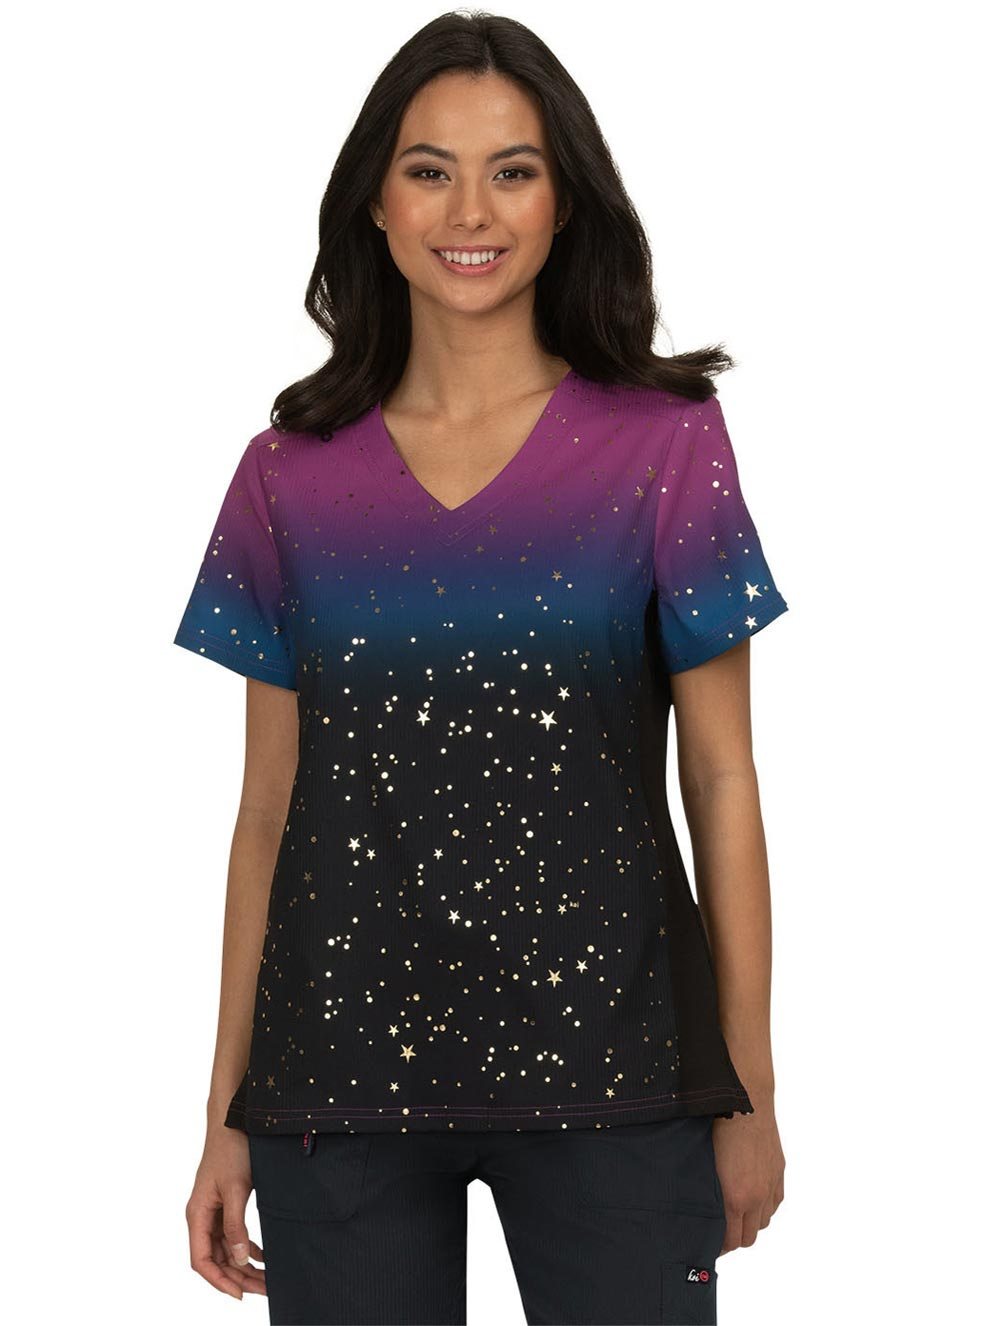 'Reform' Foiled Ombre Top